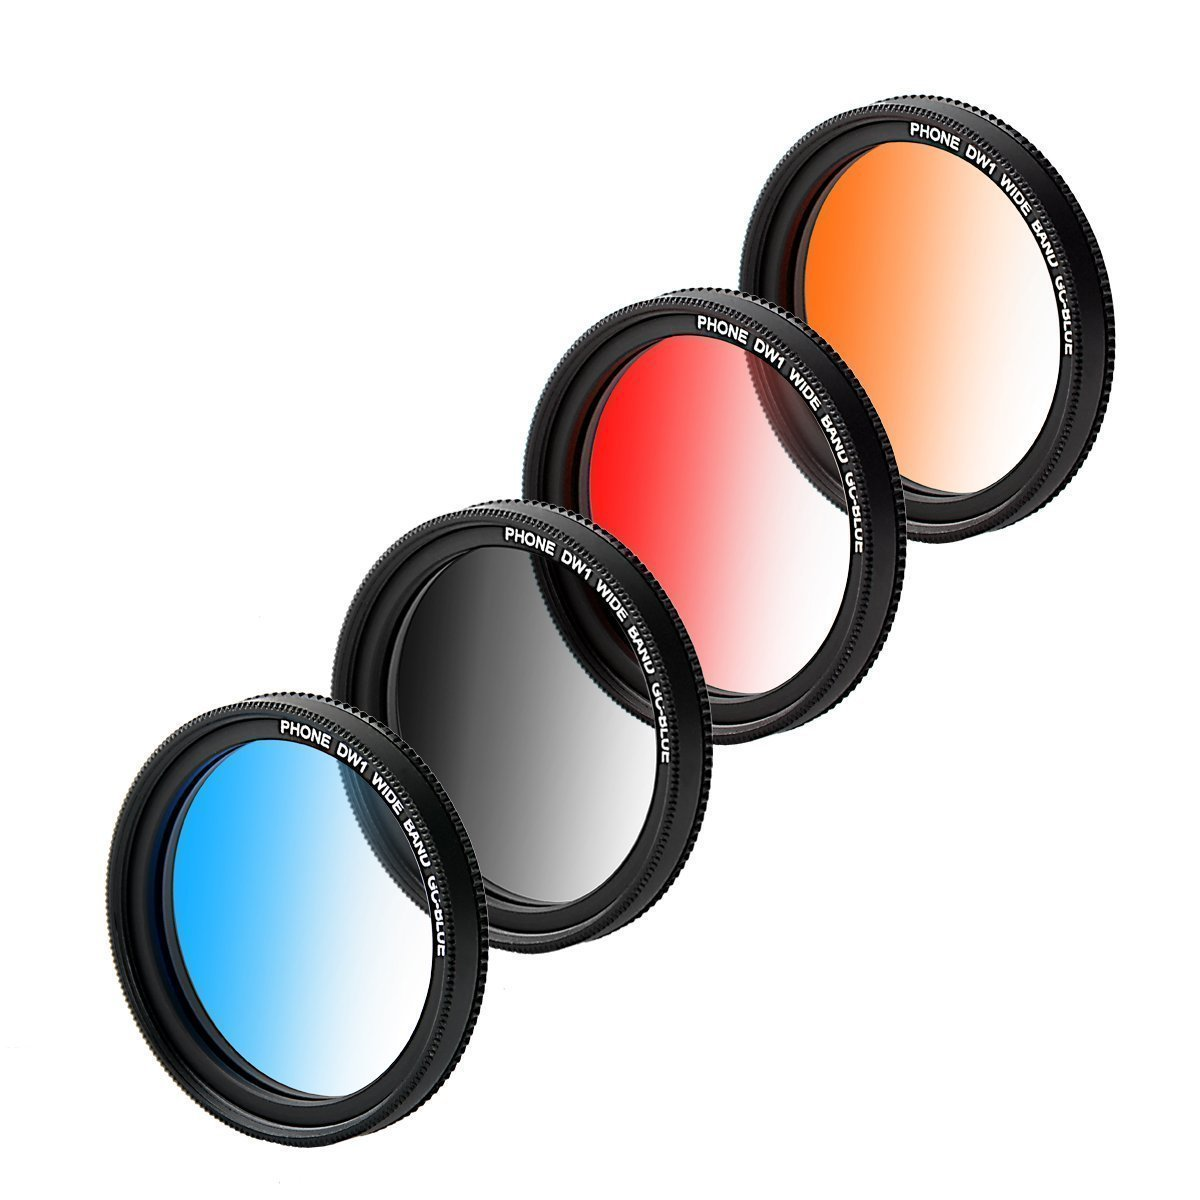 ZOMEI Graduated Lens Filter 37mm Professional 4 Pieces Camera Lens Filter Kit + WINGONEER LED light for iPhone 6S, 6S Plus, Samsung Galaxy, All Smartphones (Graduated Blue/Gray/Orange/Red) by ZoMei